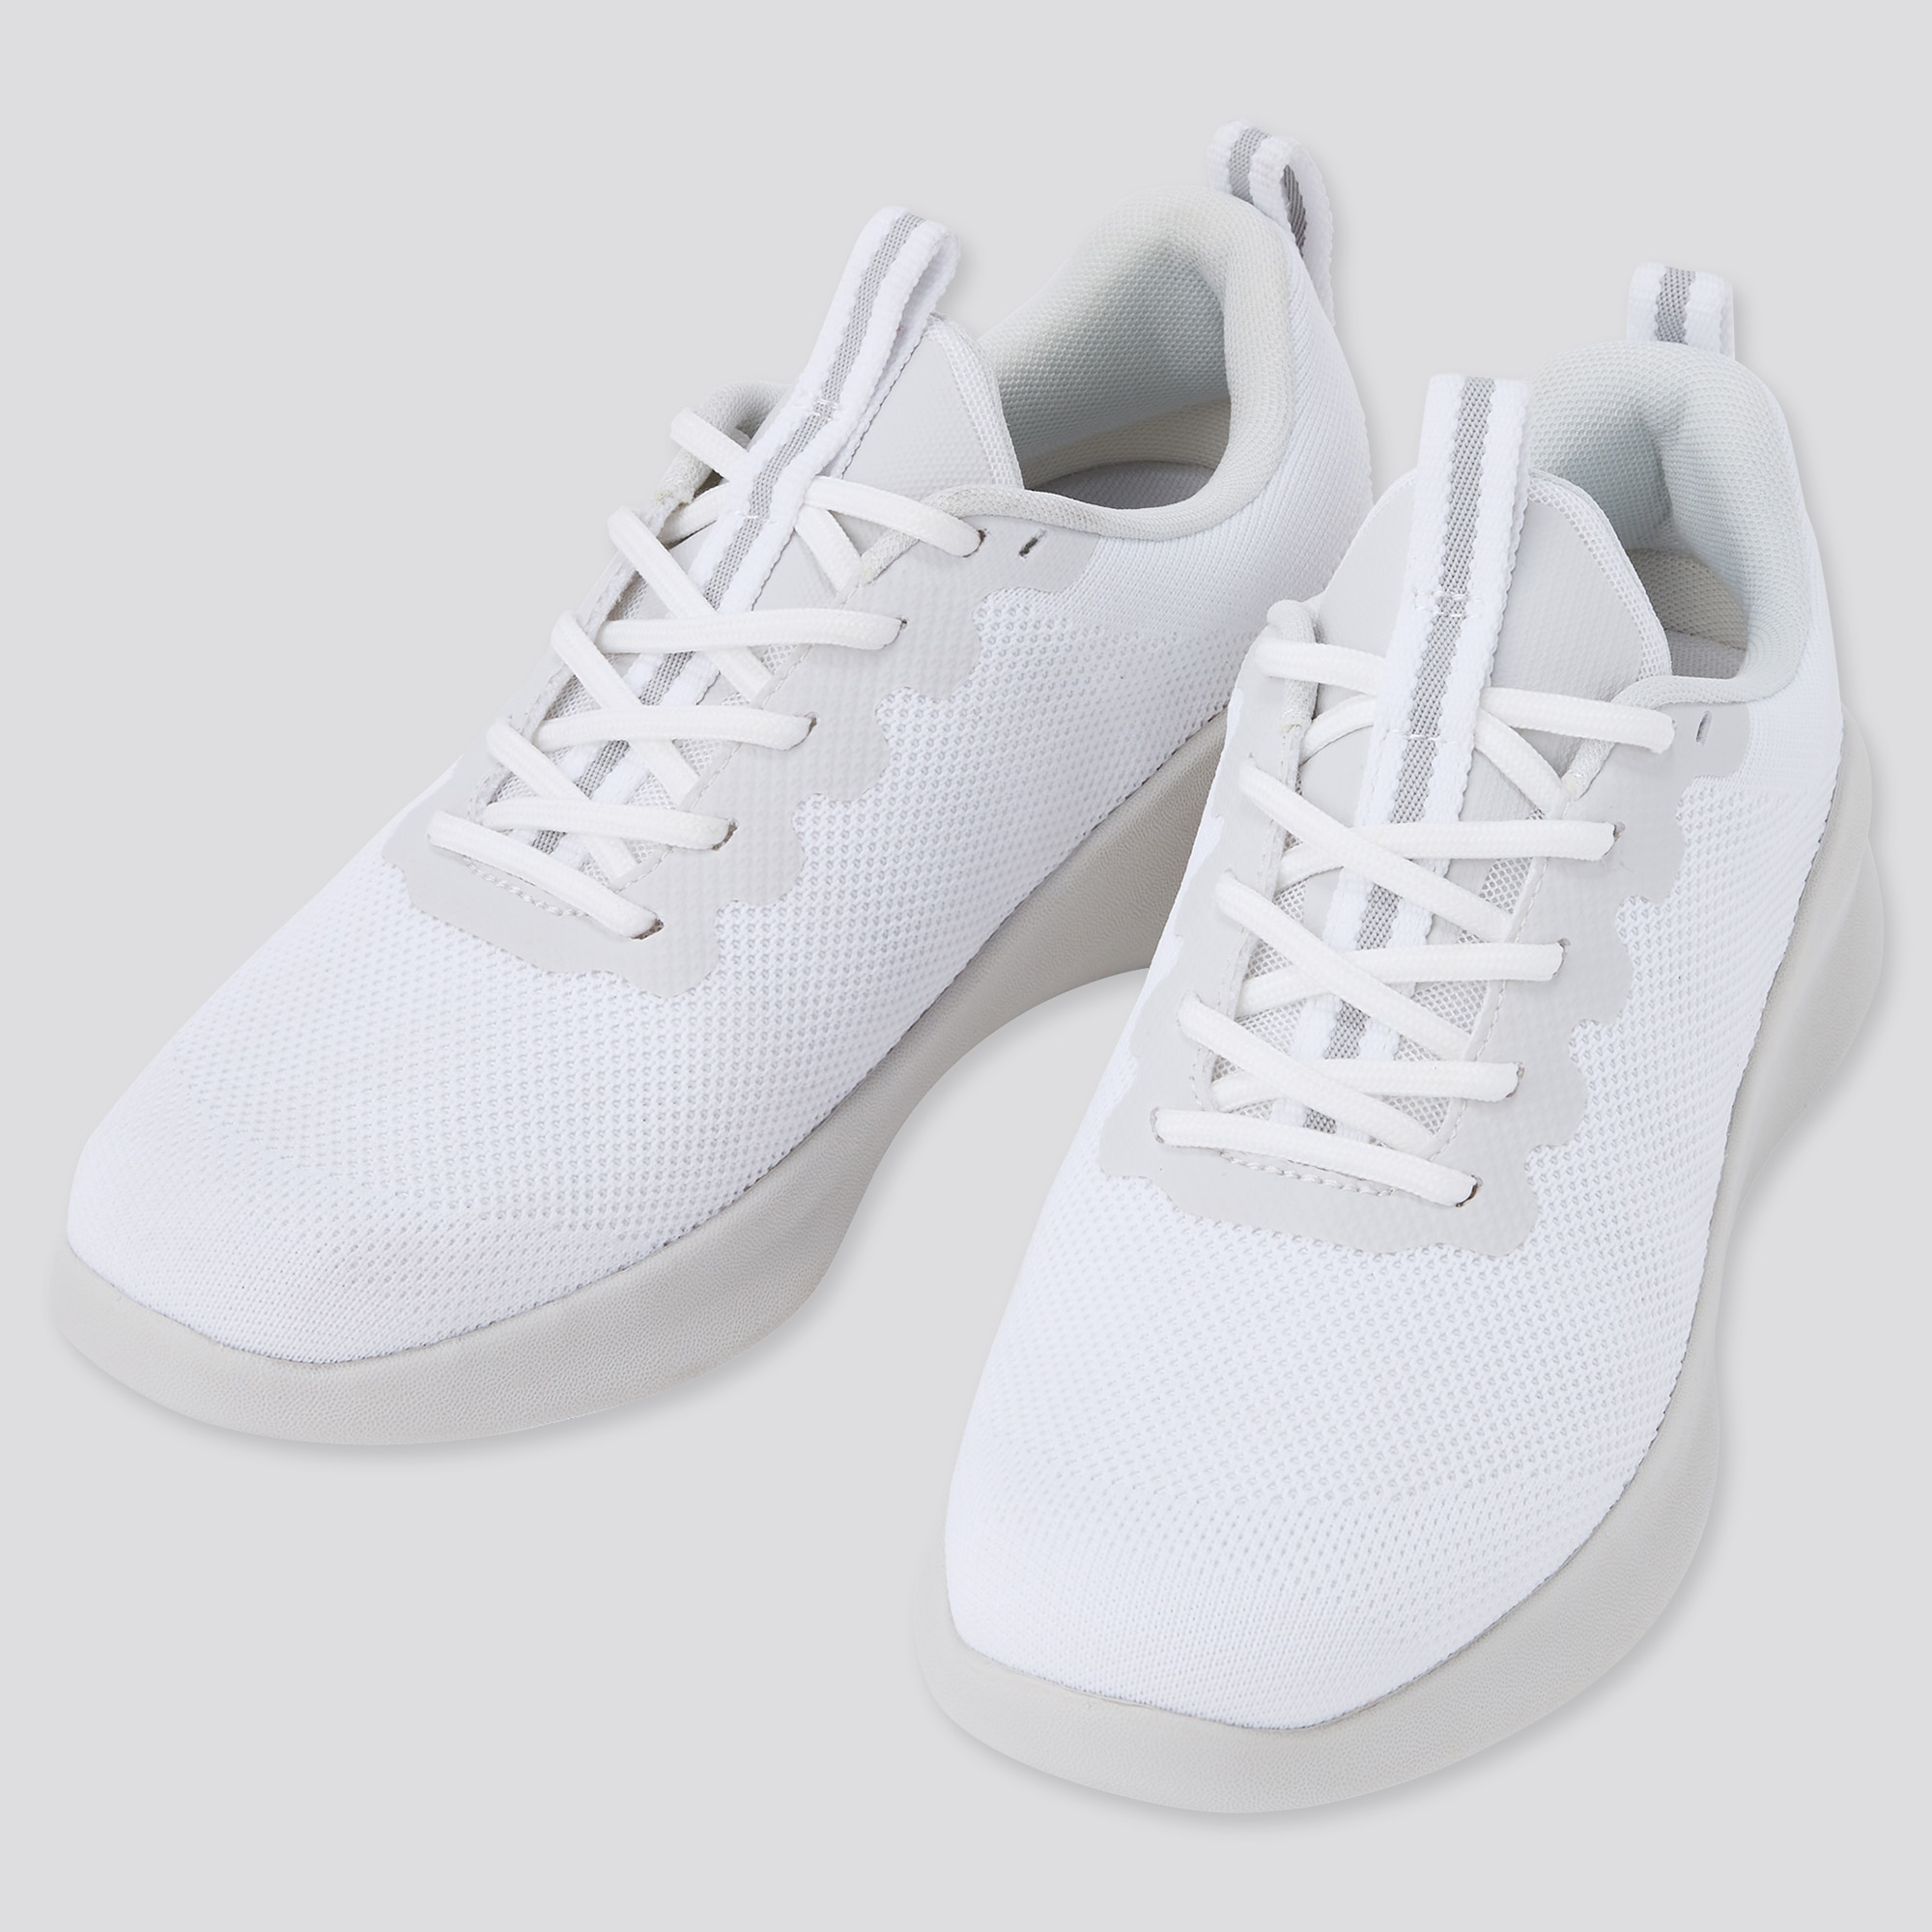 Uniqlo KNIT LACE UP SNEAKERS